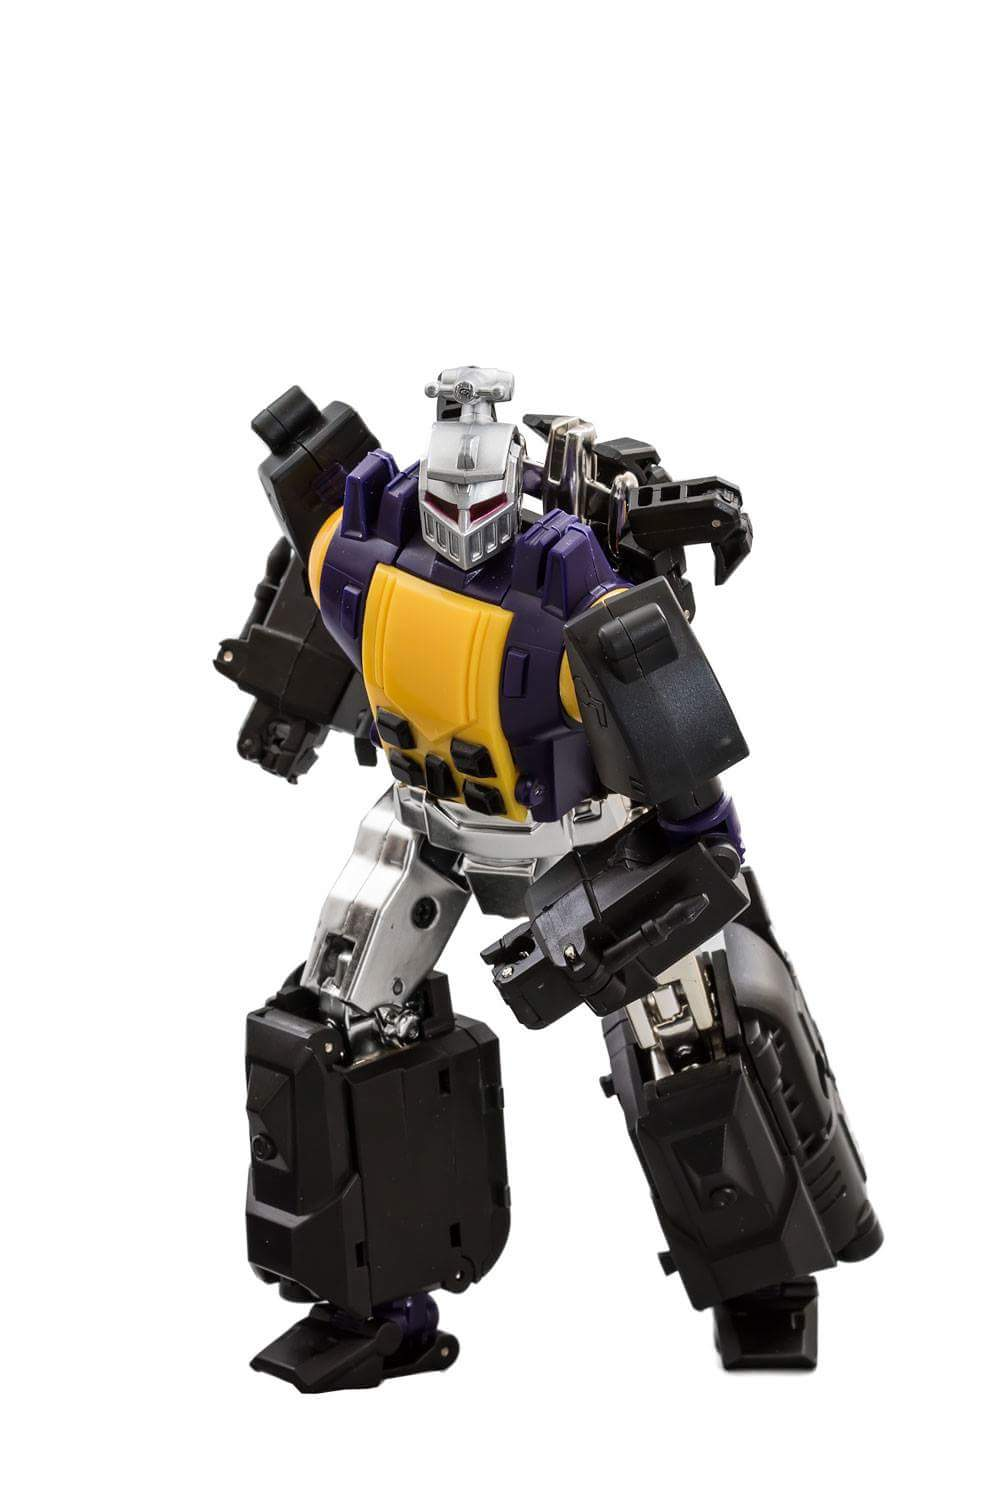 [Mastermind Creations] Produit Tiers - Jouets R-26 Malum Malitia (Potestas, Calcitrant & Inflecto) - aka Insecticons WOfMMvjf